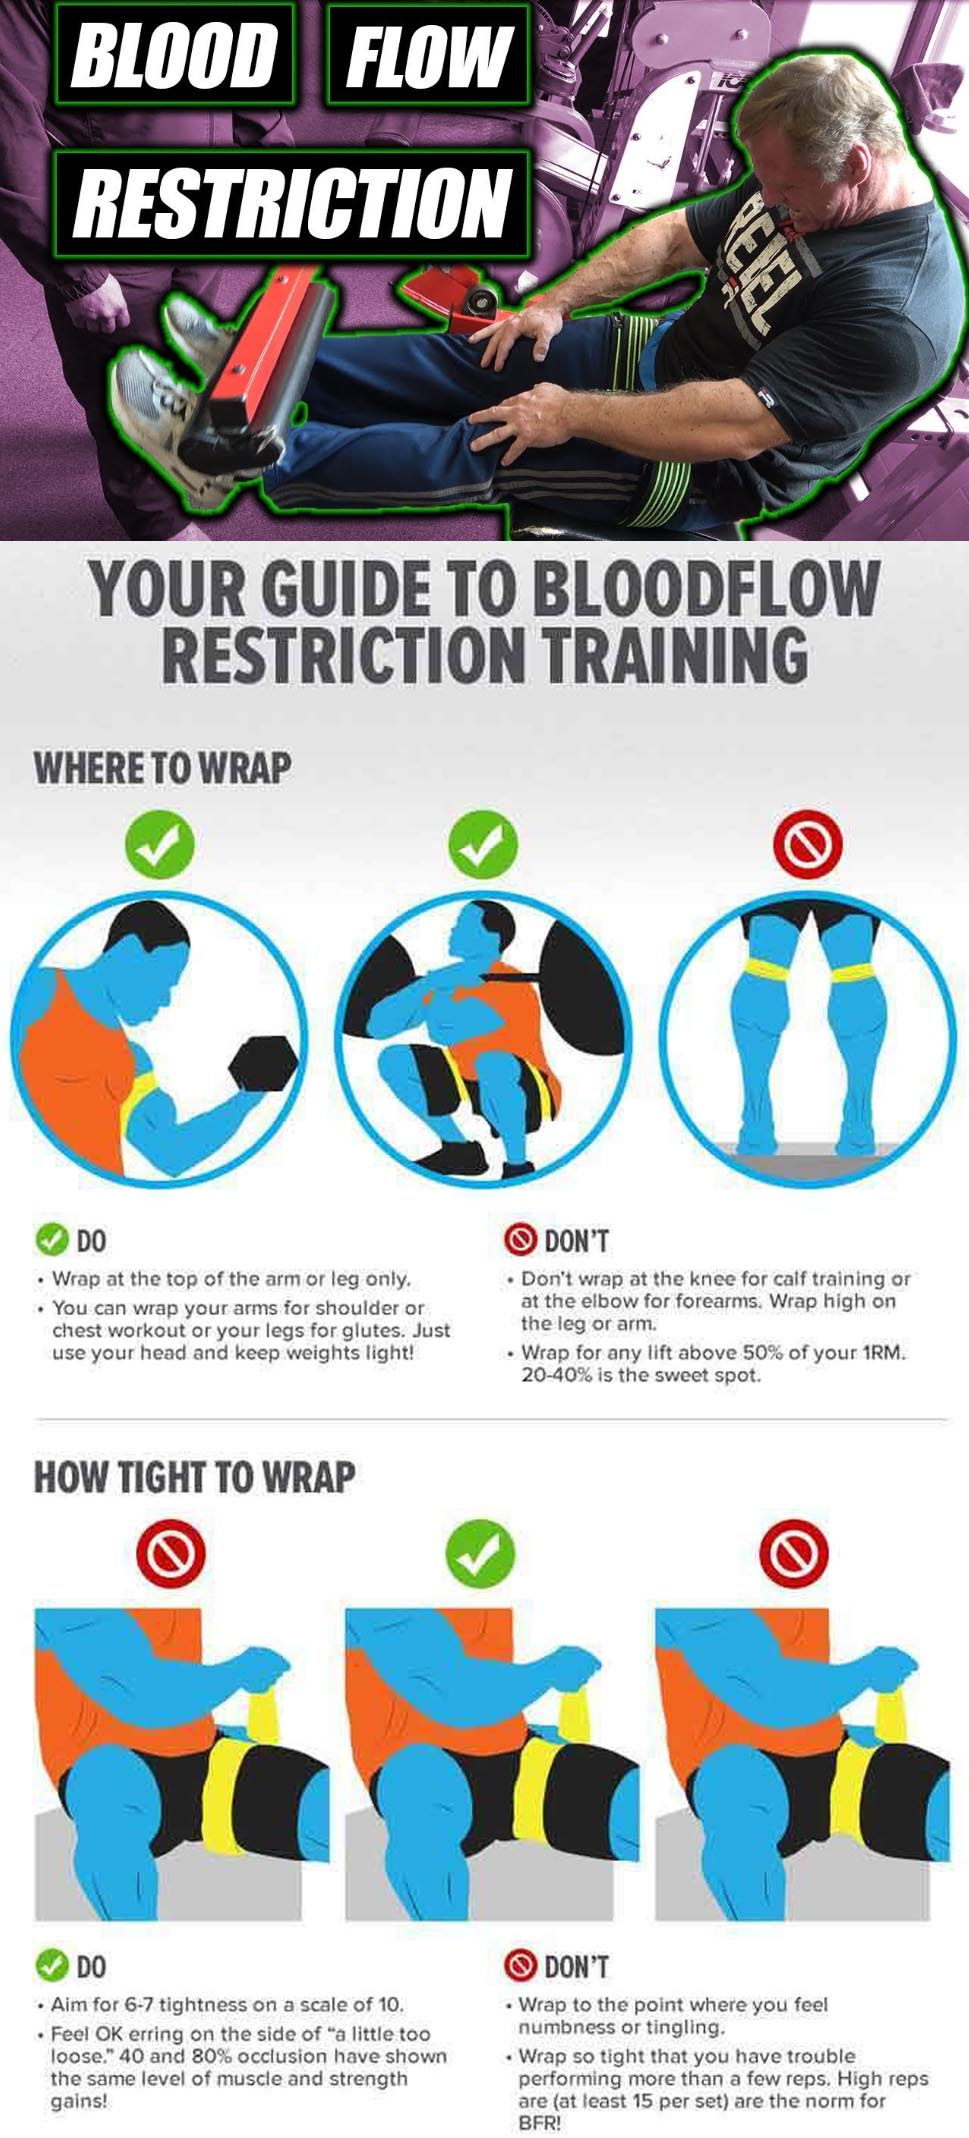 HOW TO BLOOD FLOW RESTRICTION TRAINING (BFR)